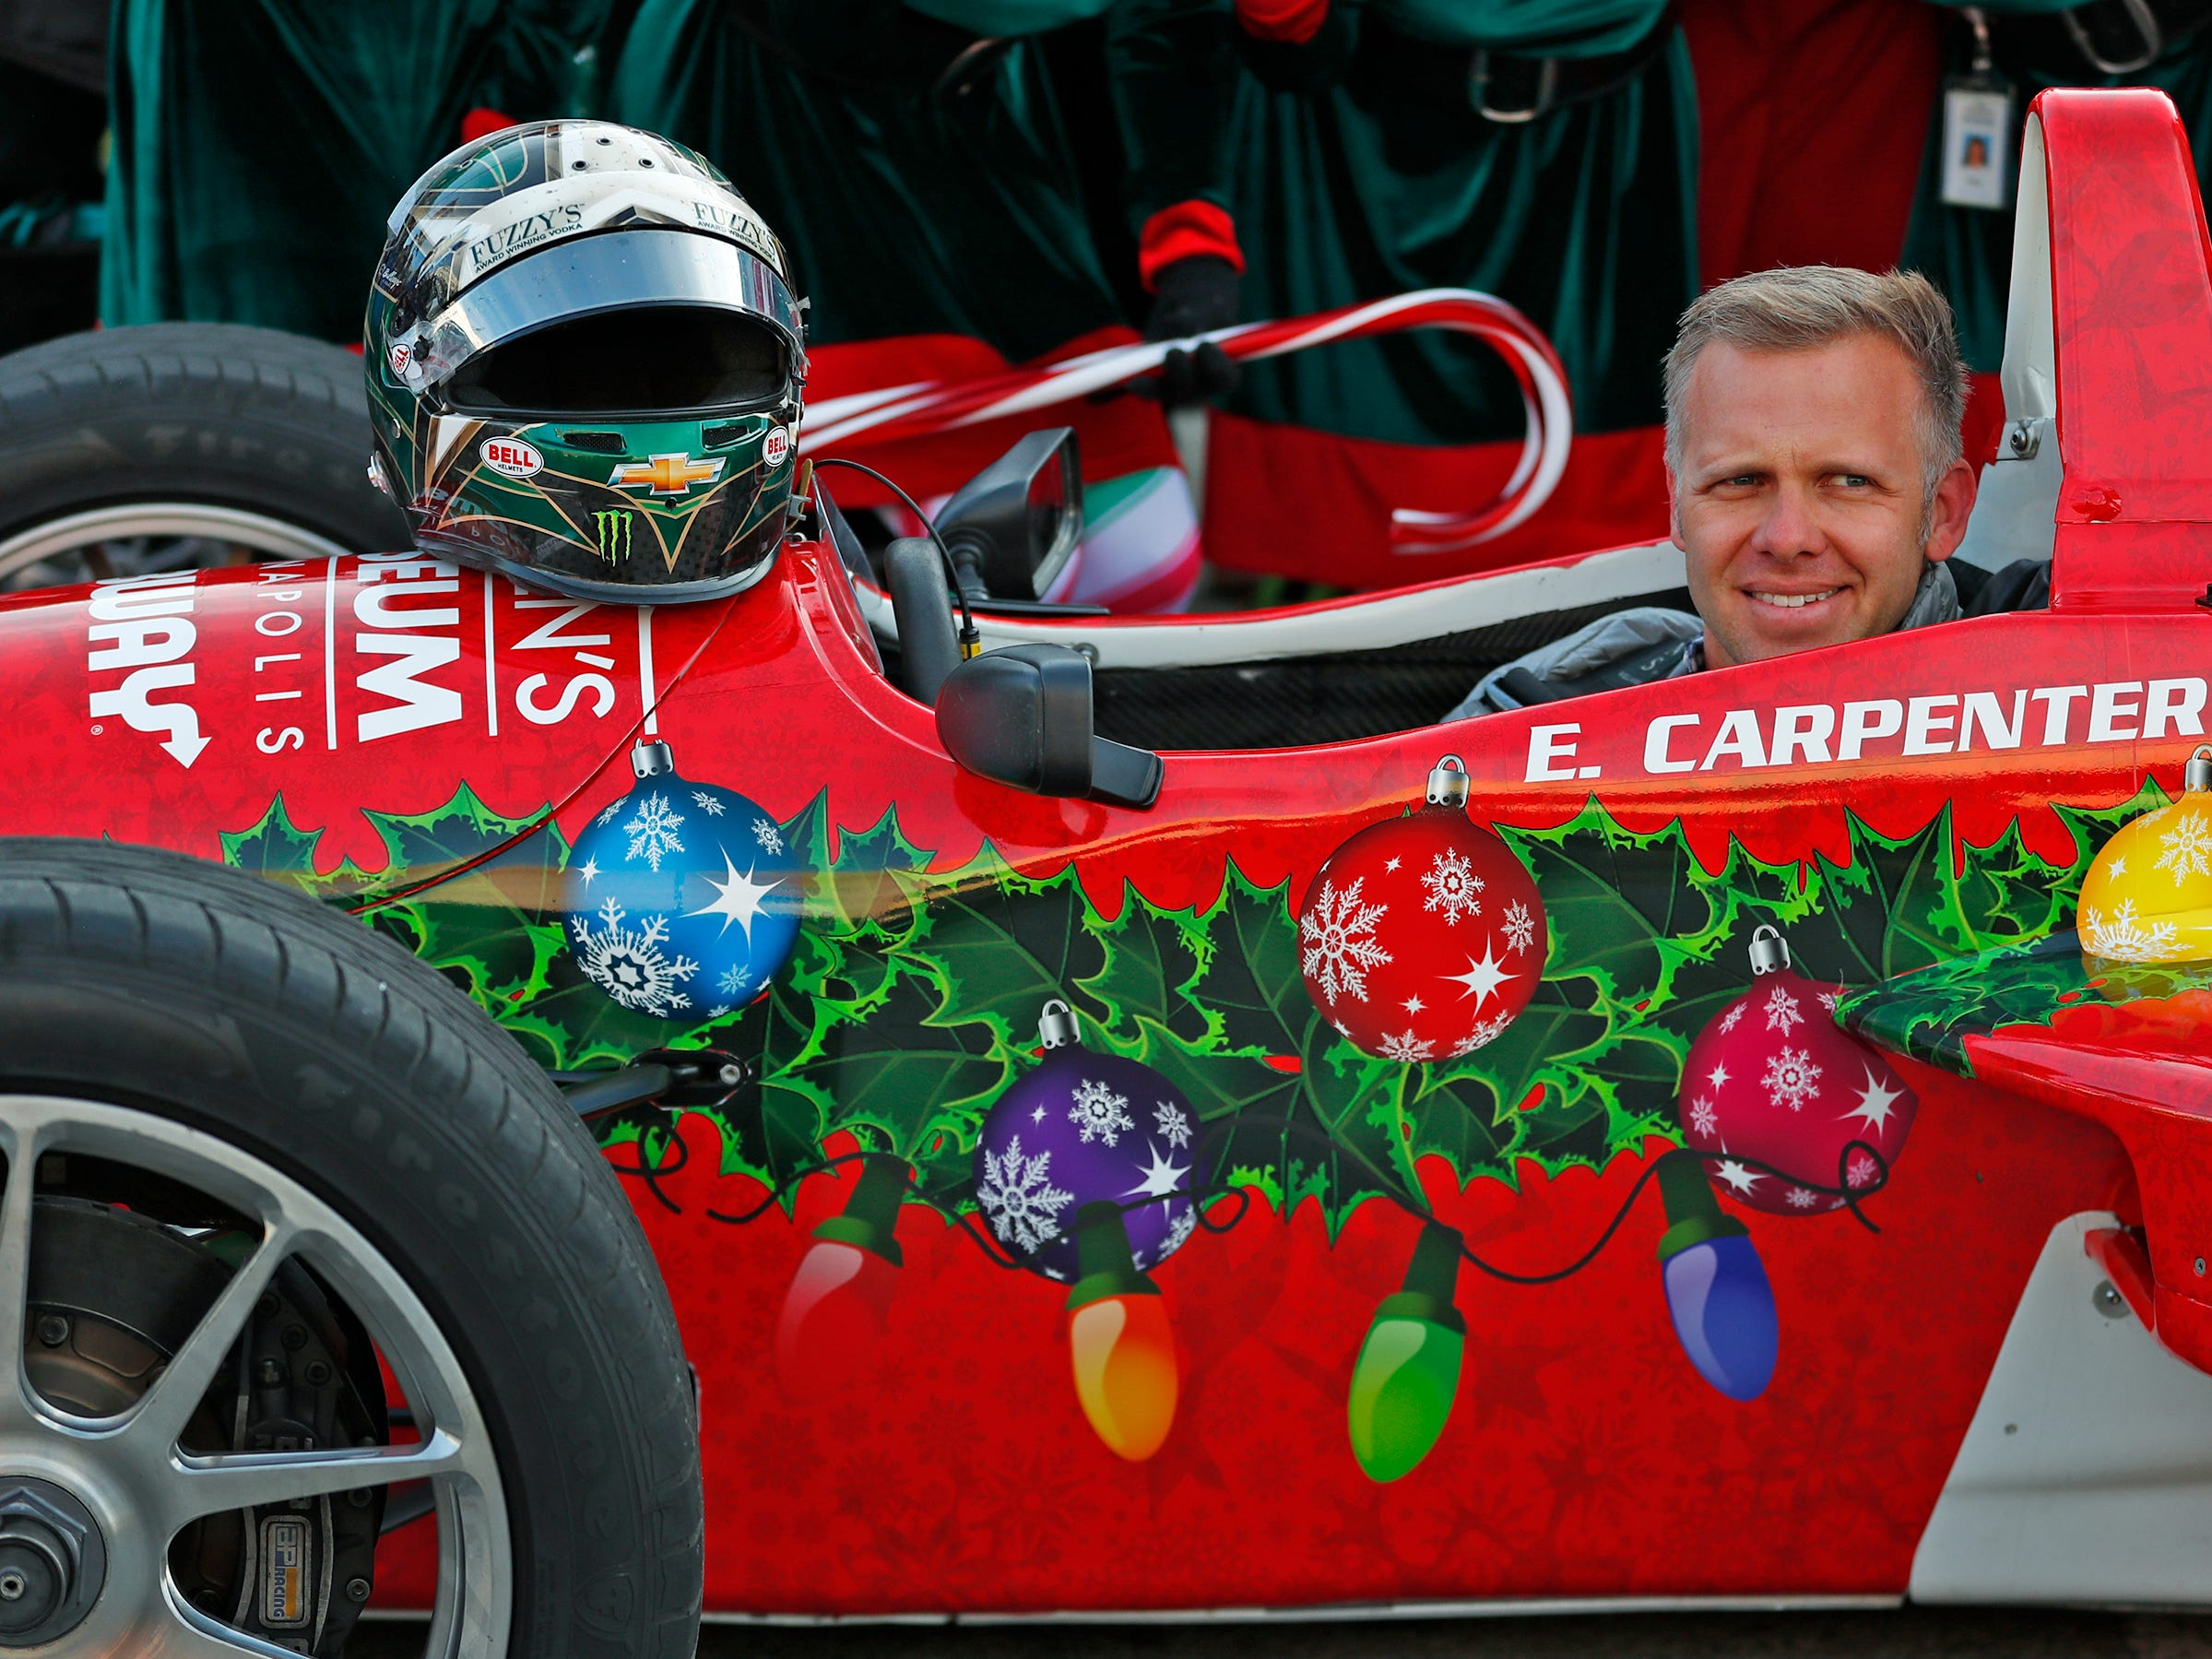 IndyCar driver Ed Carpenter smiles after driving Santa to the Children's Museum of Indianapolis in an IndyCar, Friday, Nov. 23, 2018.